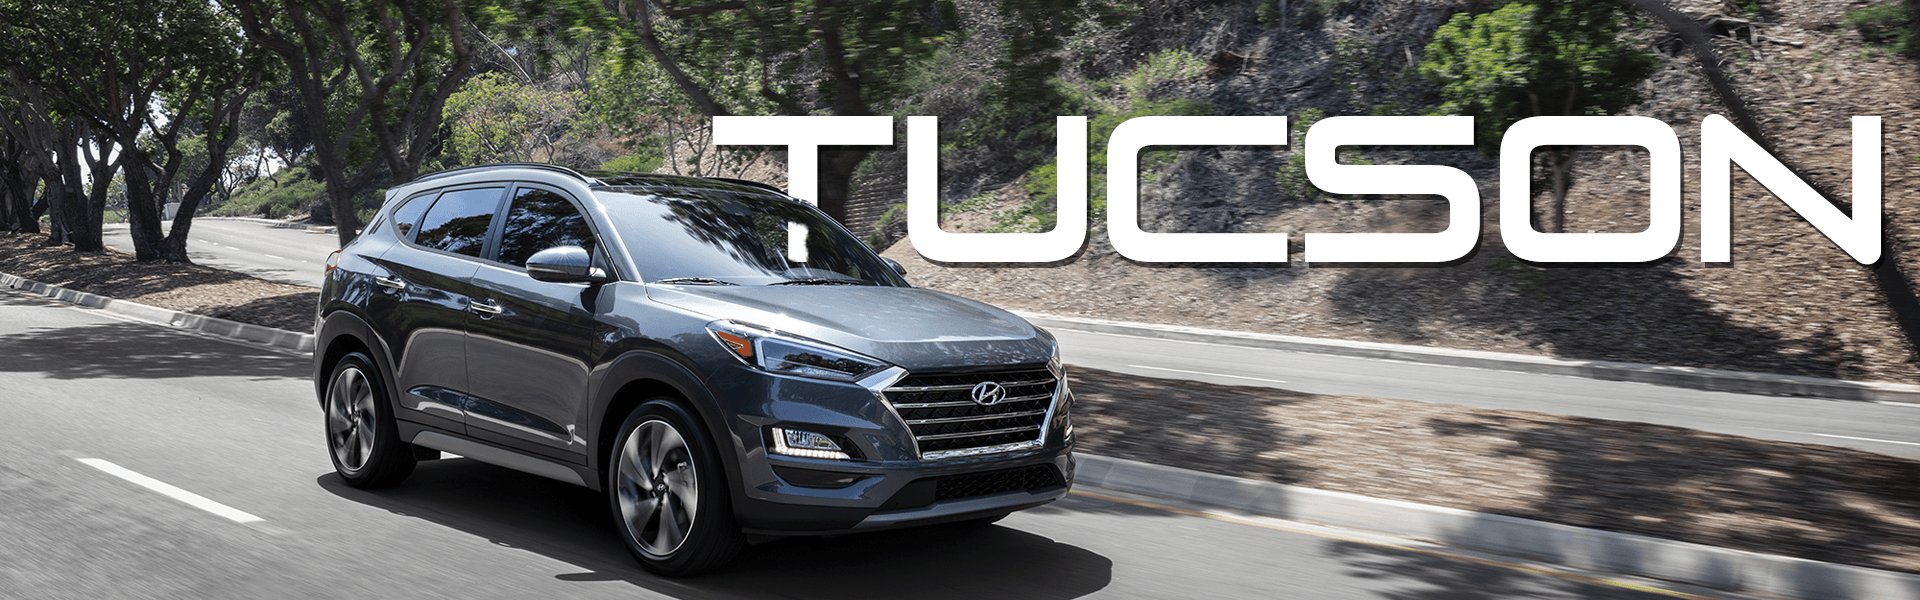 2020 Tucson Ultimate AWD